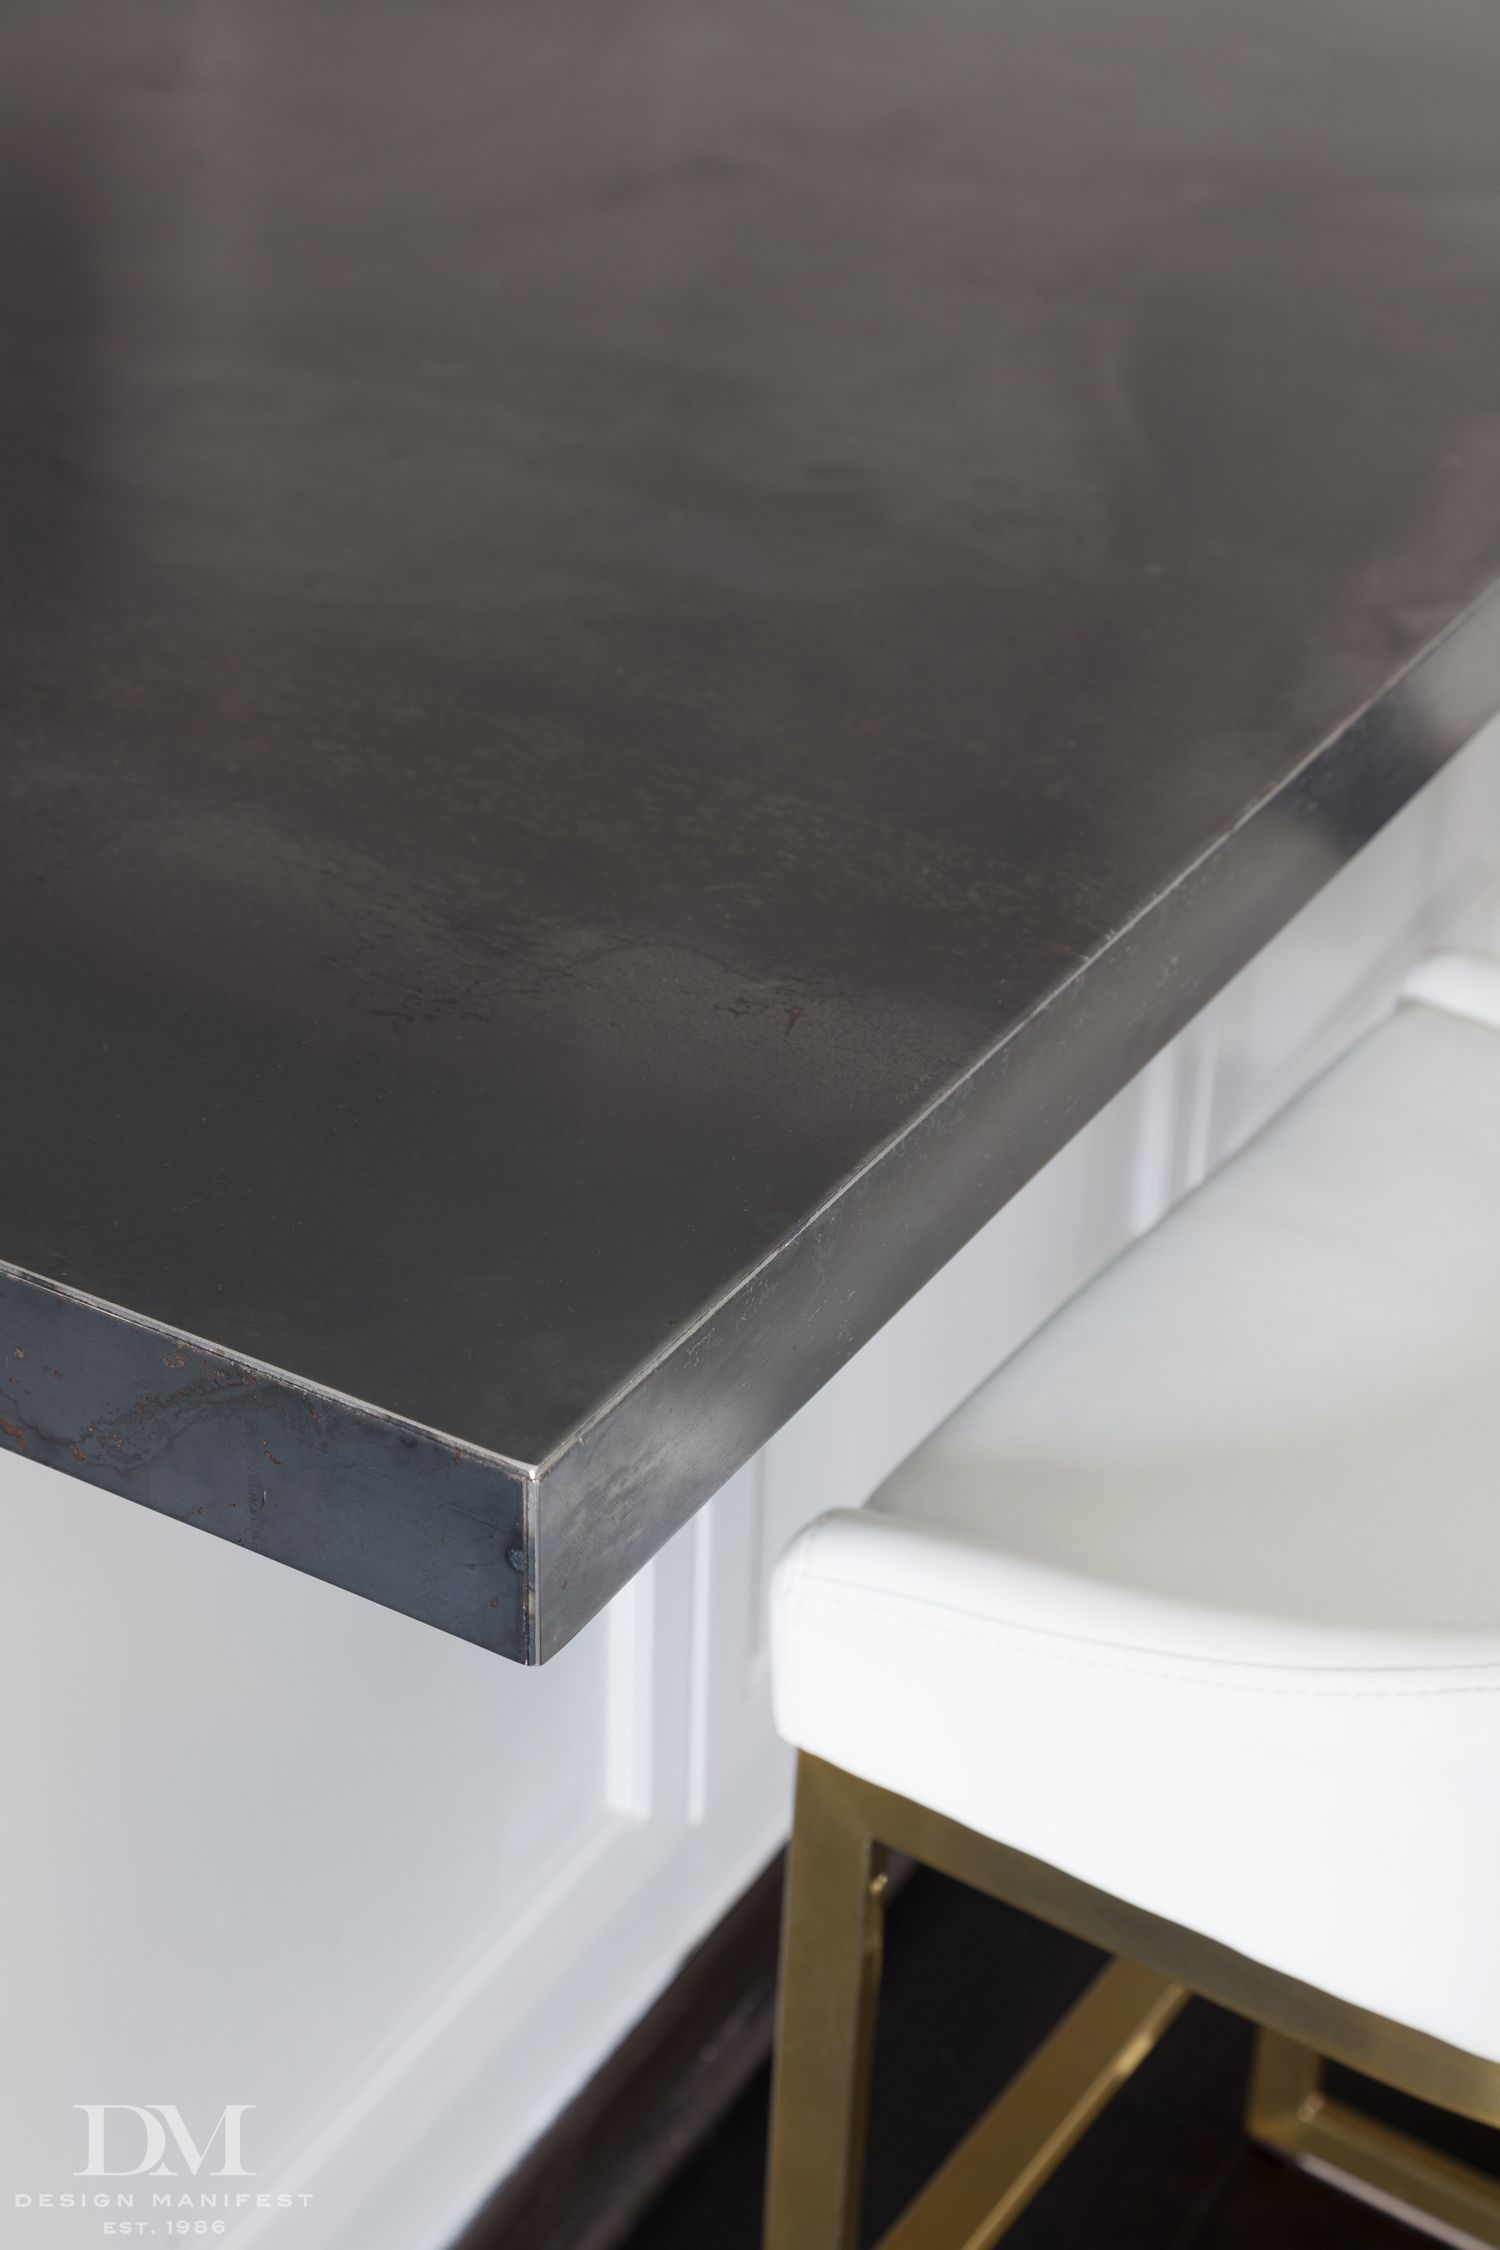 Natural Steel Countertop   This Fits Over The Granite Worktop To Give Her A  More Contemporary Look Without Spending A Fortune